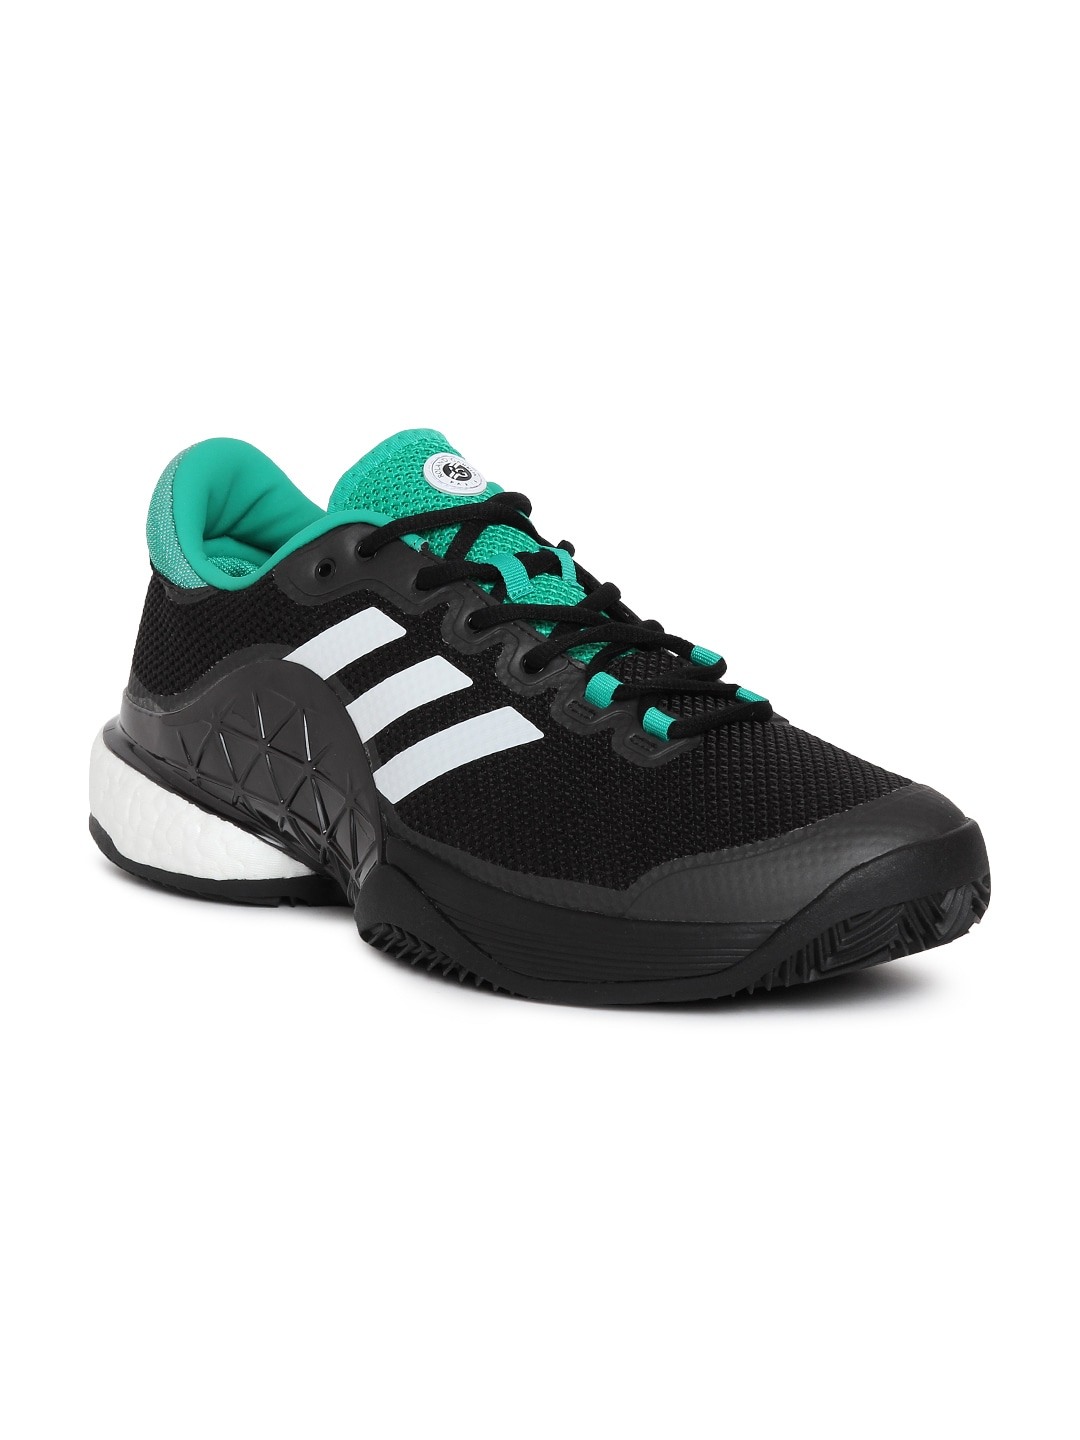 adidas boost shoes india los granados apartment co uk